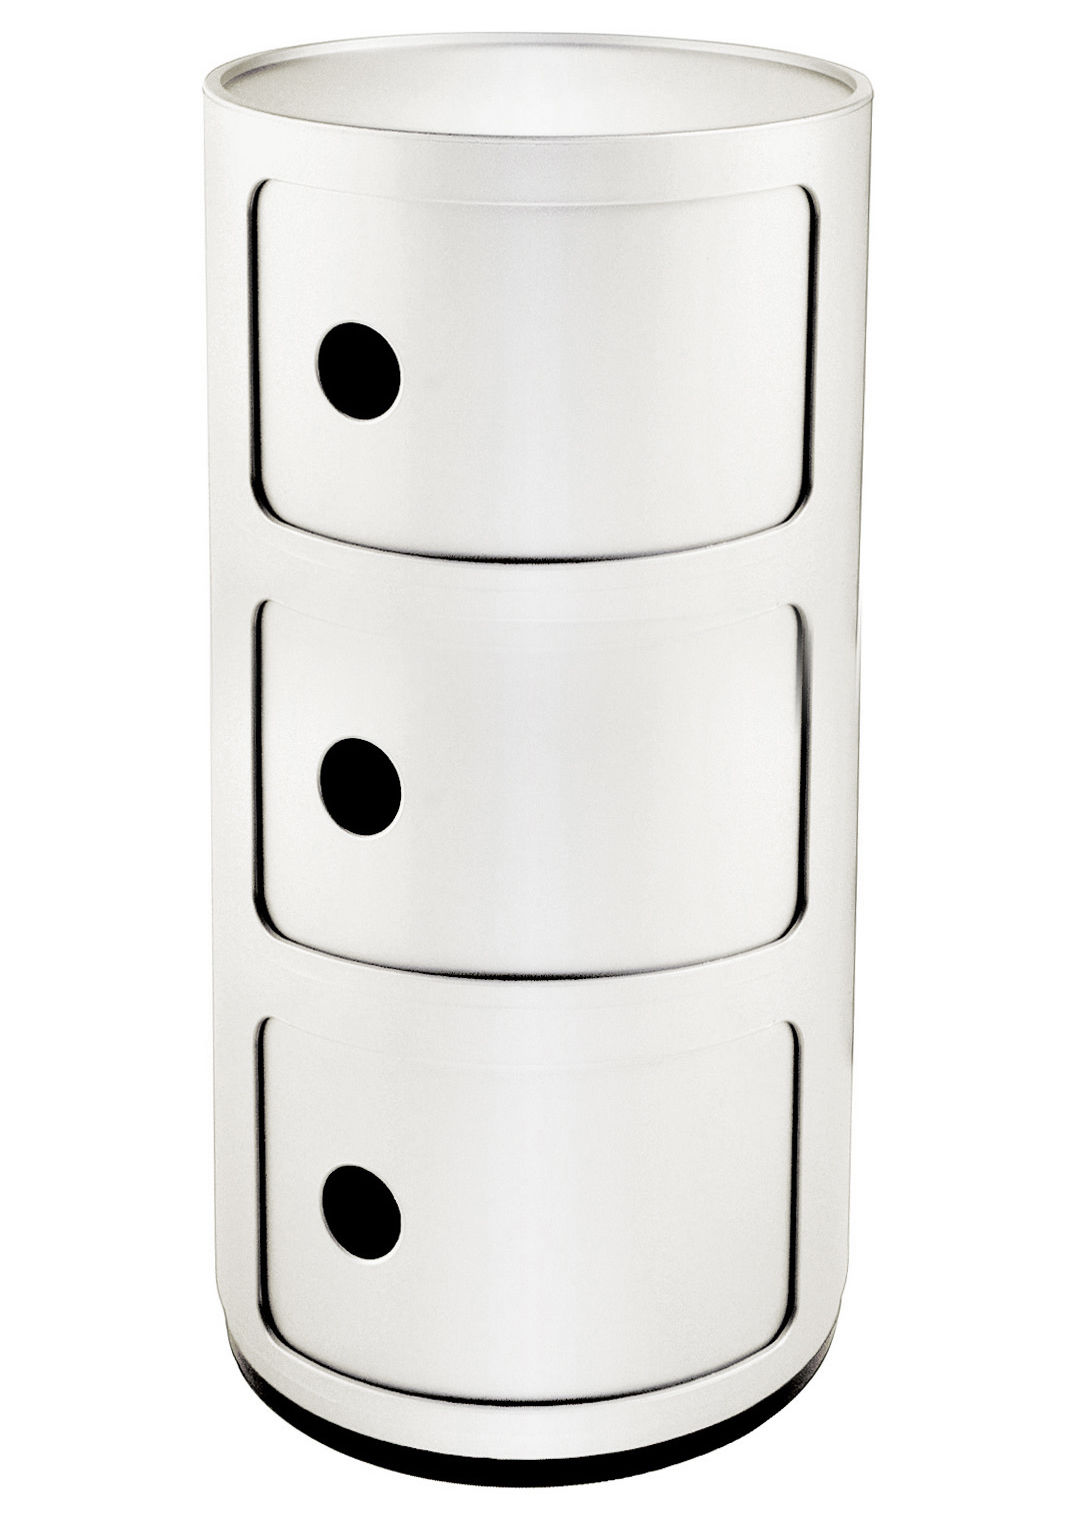 Componibili Kartell Componibili Storage - 3 Elements White By Kartell